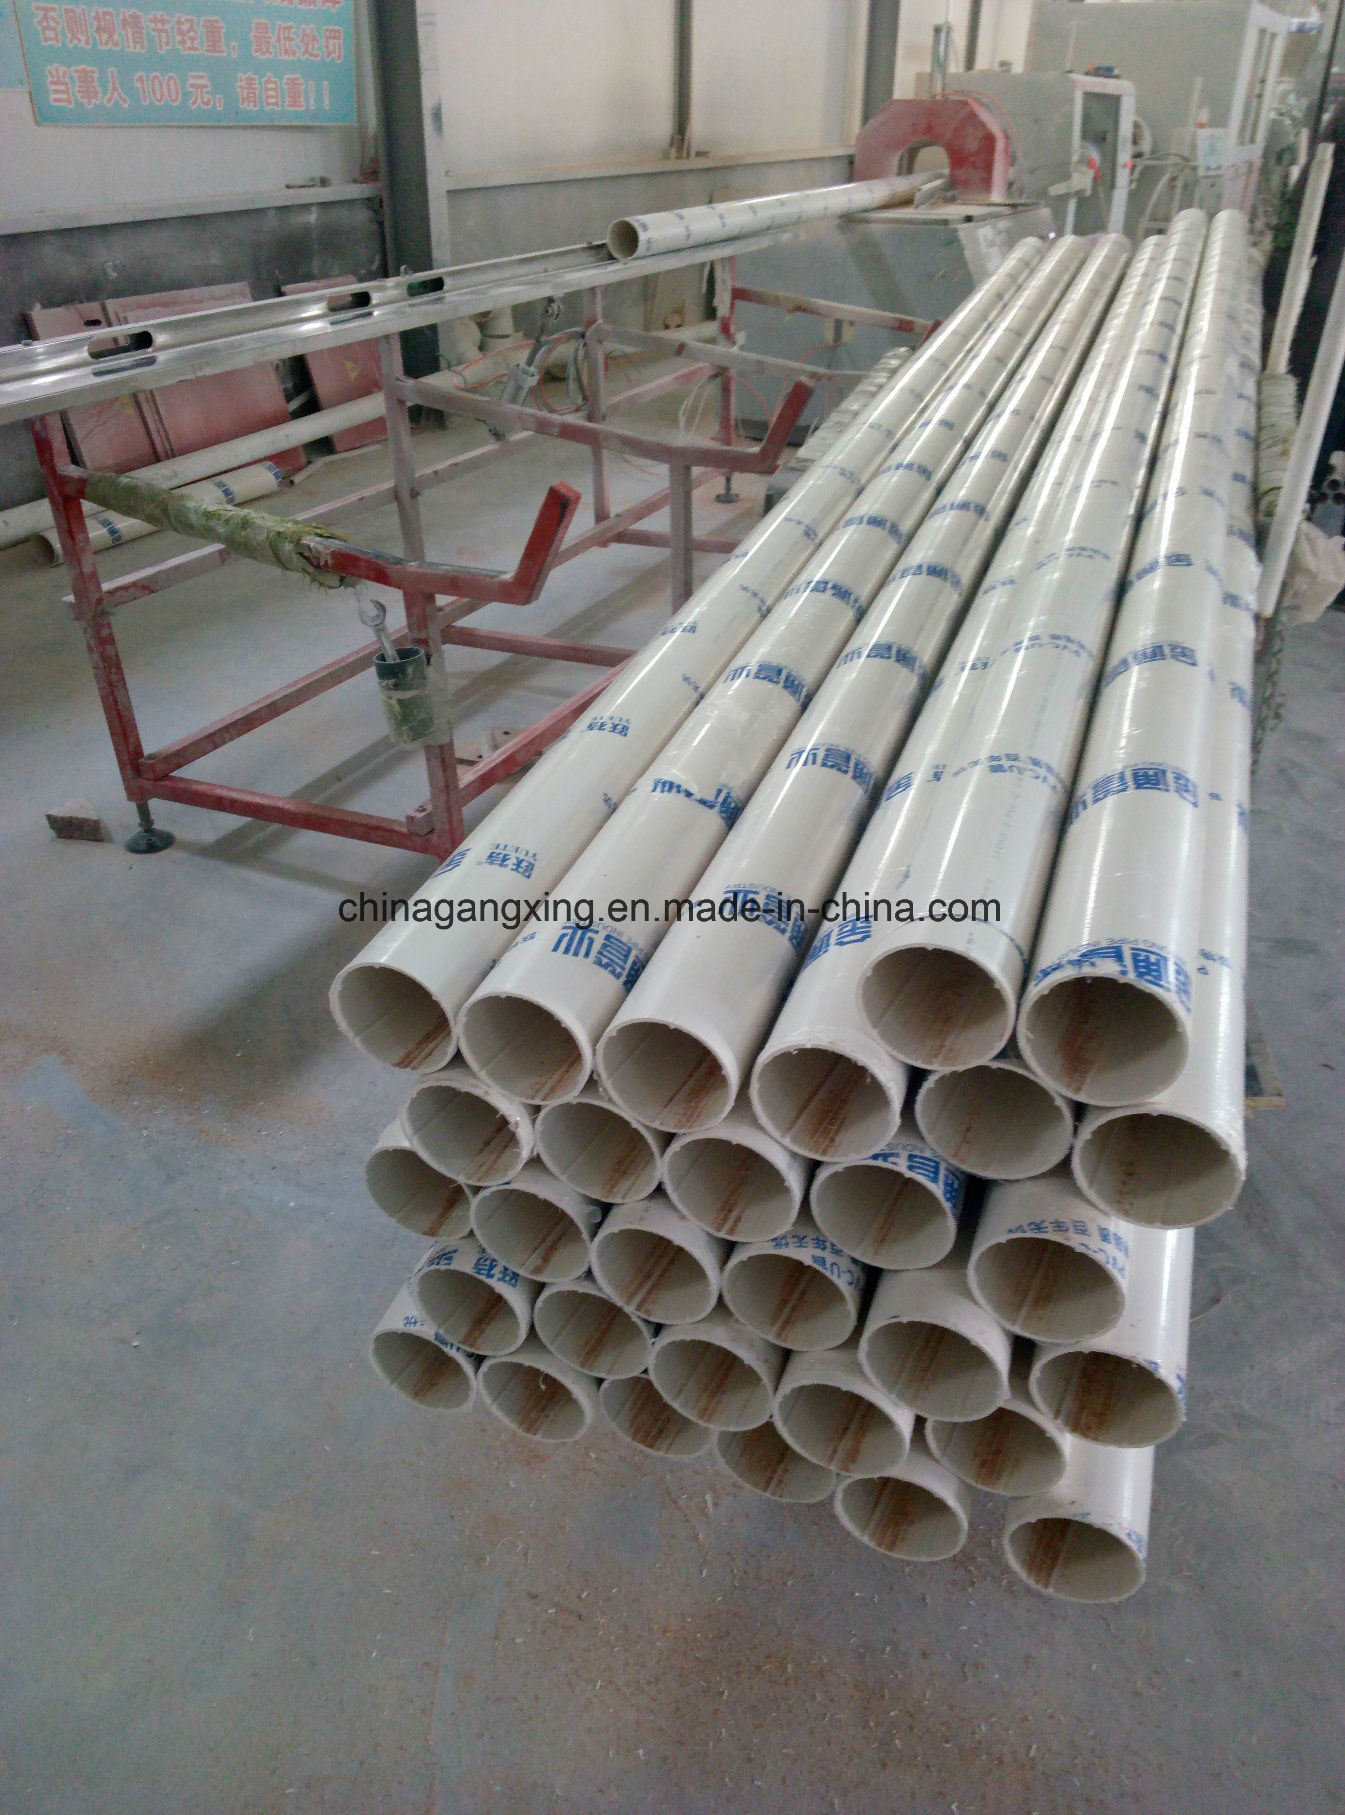 Quality Plastic Water PPR Pipe System Used for Project